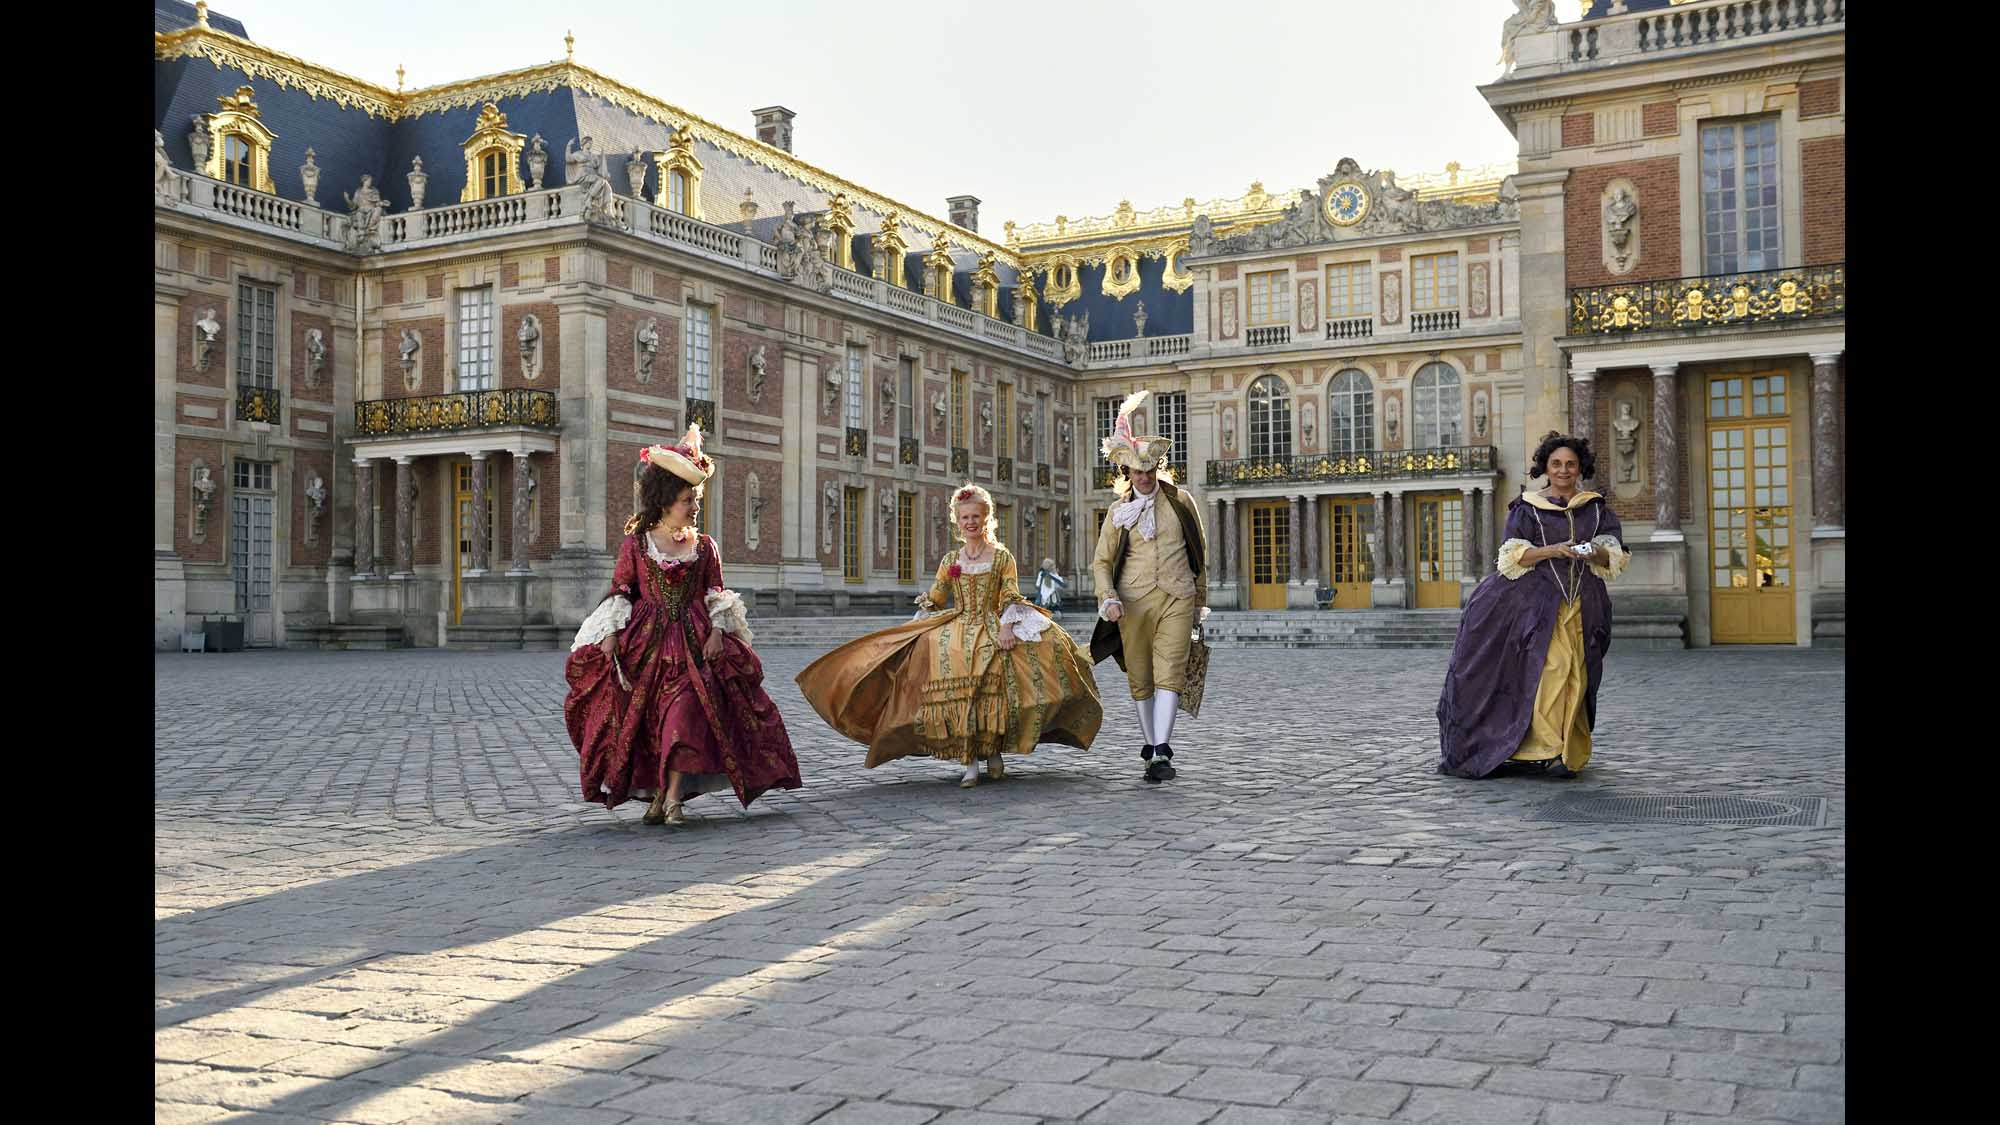 Visiting Versailles? Tips to see France's famous palace | CNN Travel